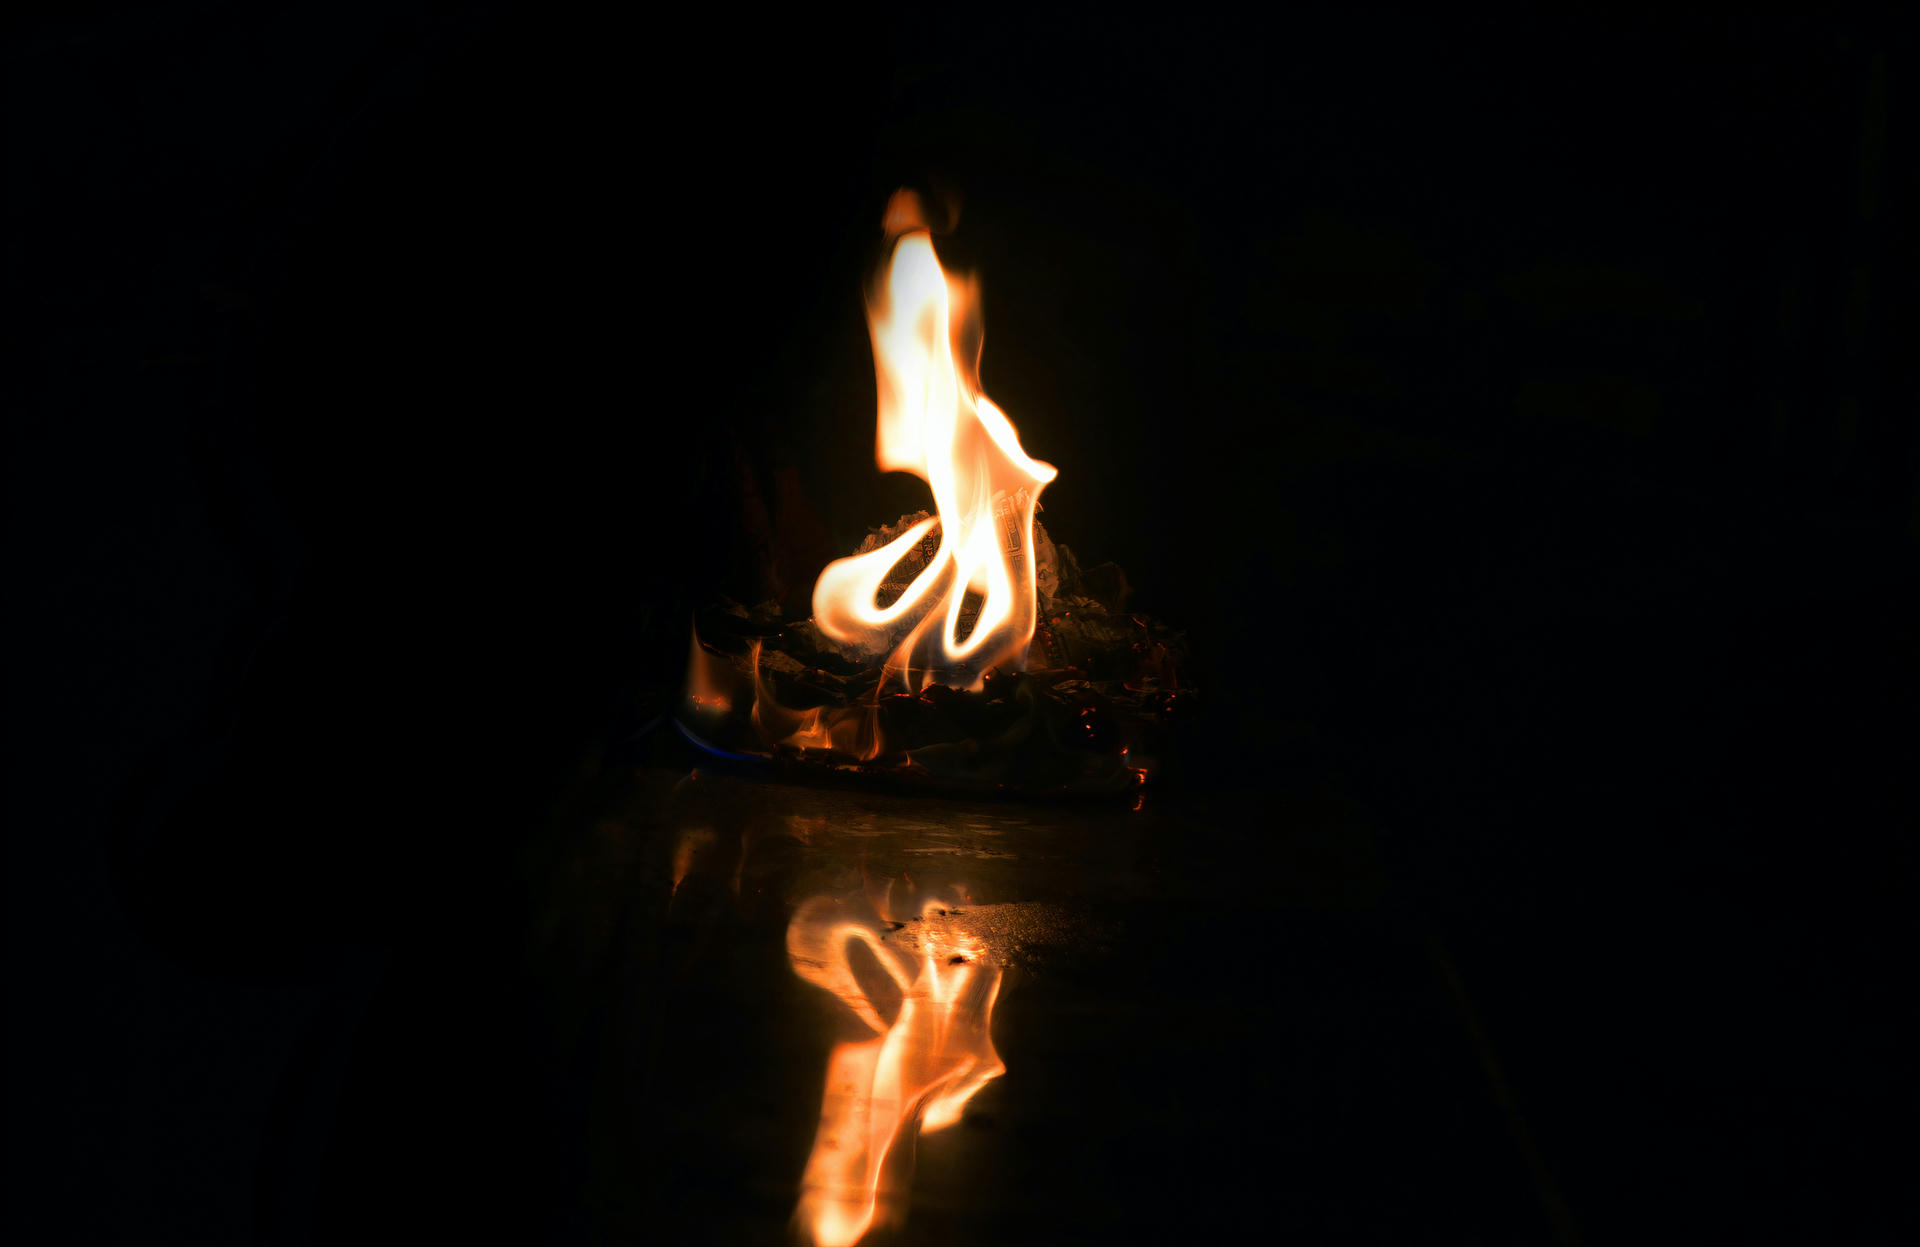 A flame with a reflection.